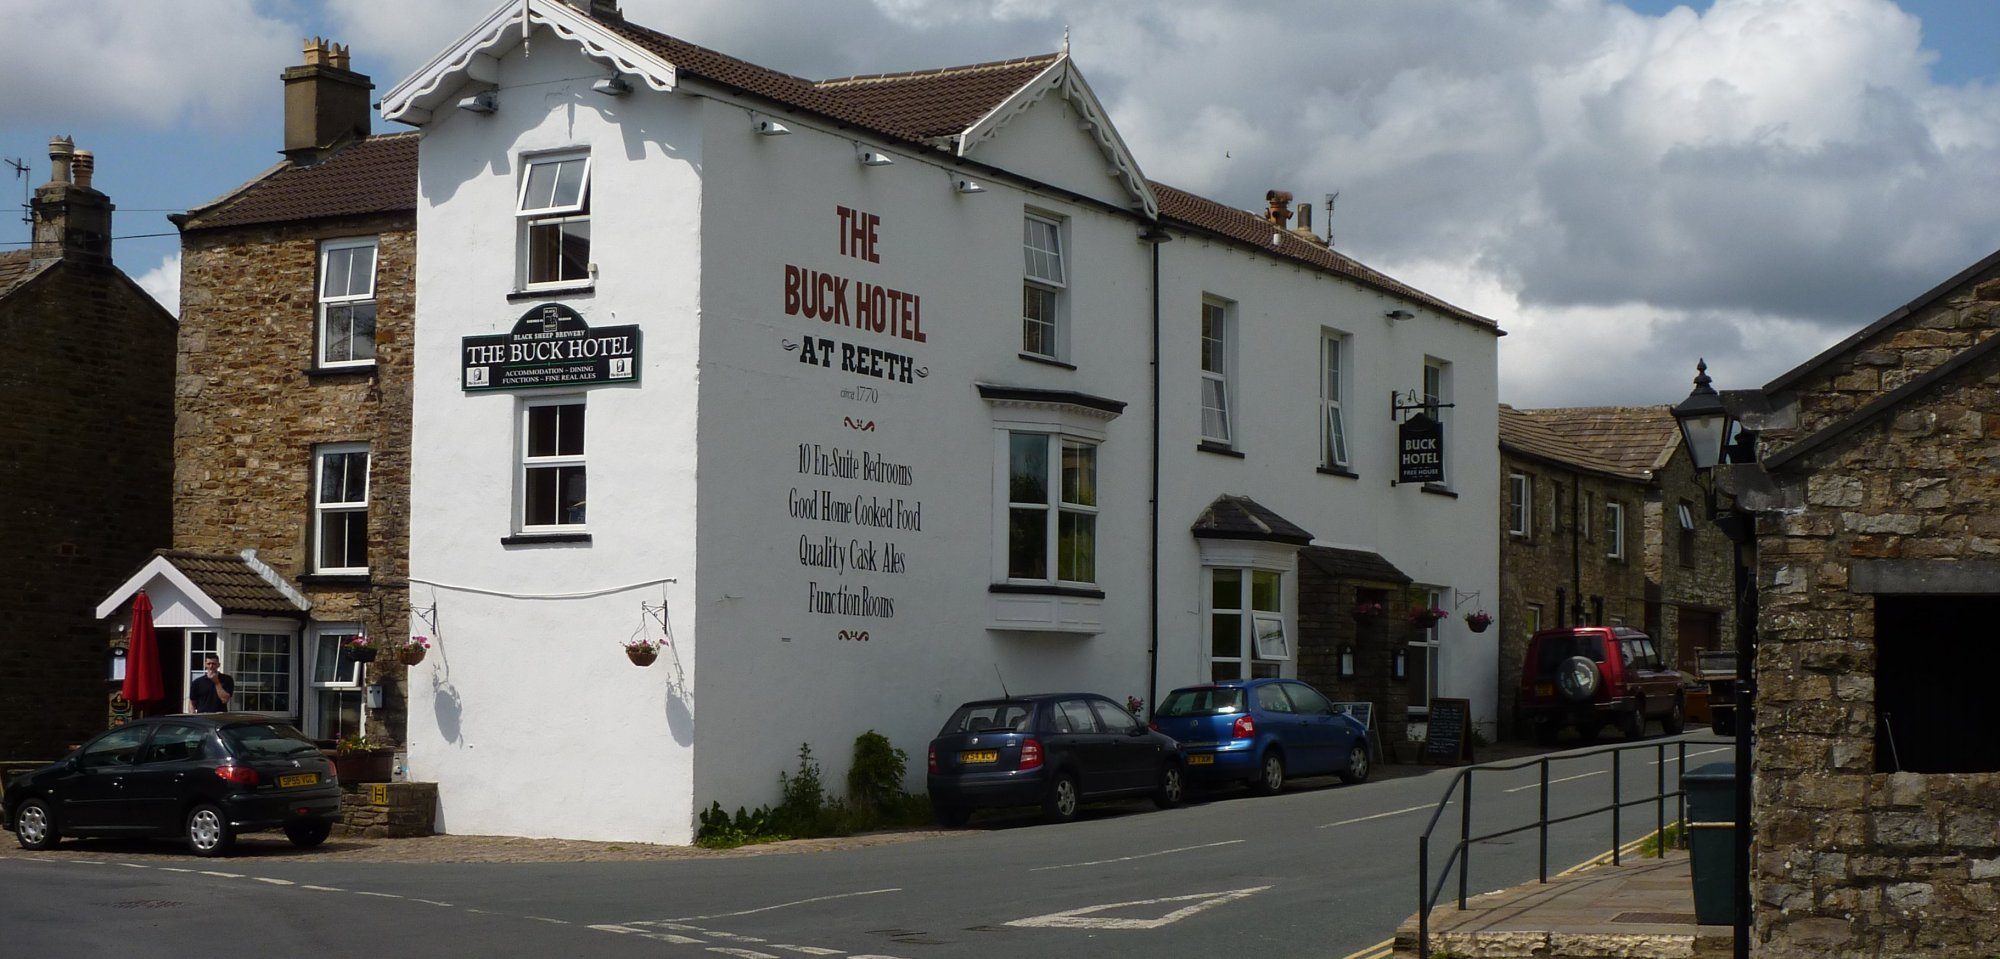 Buck Hotel, Reeth